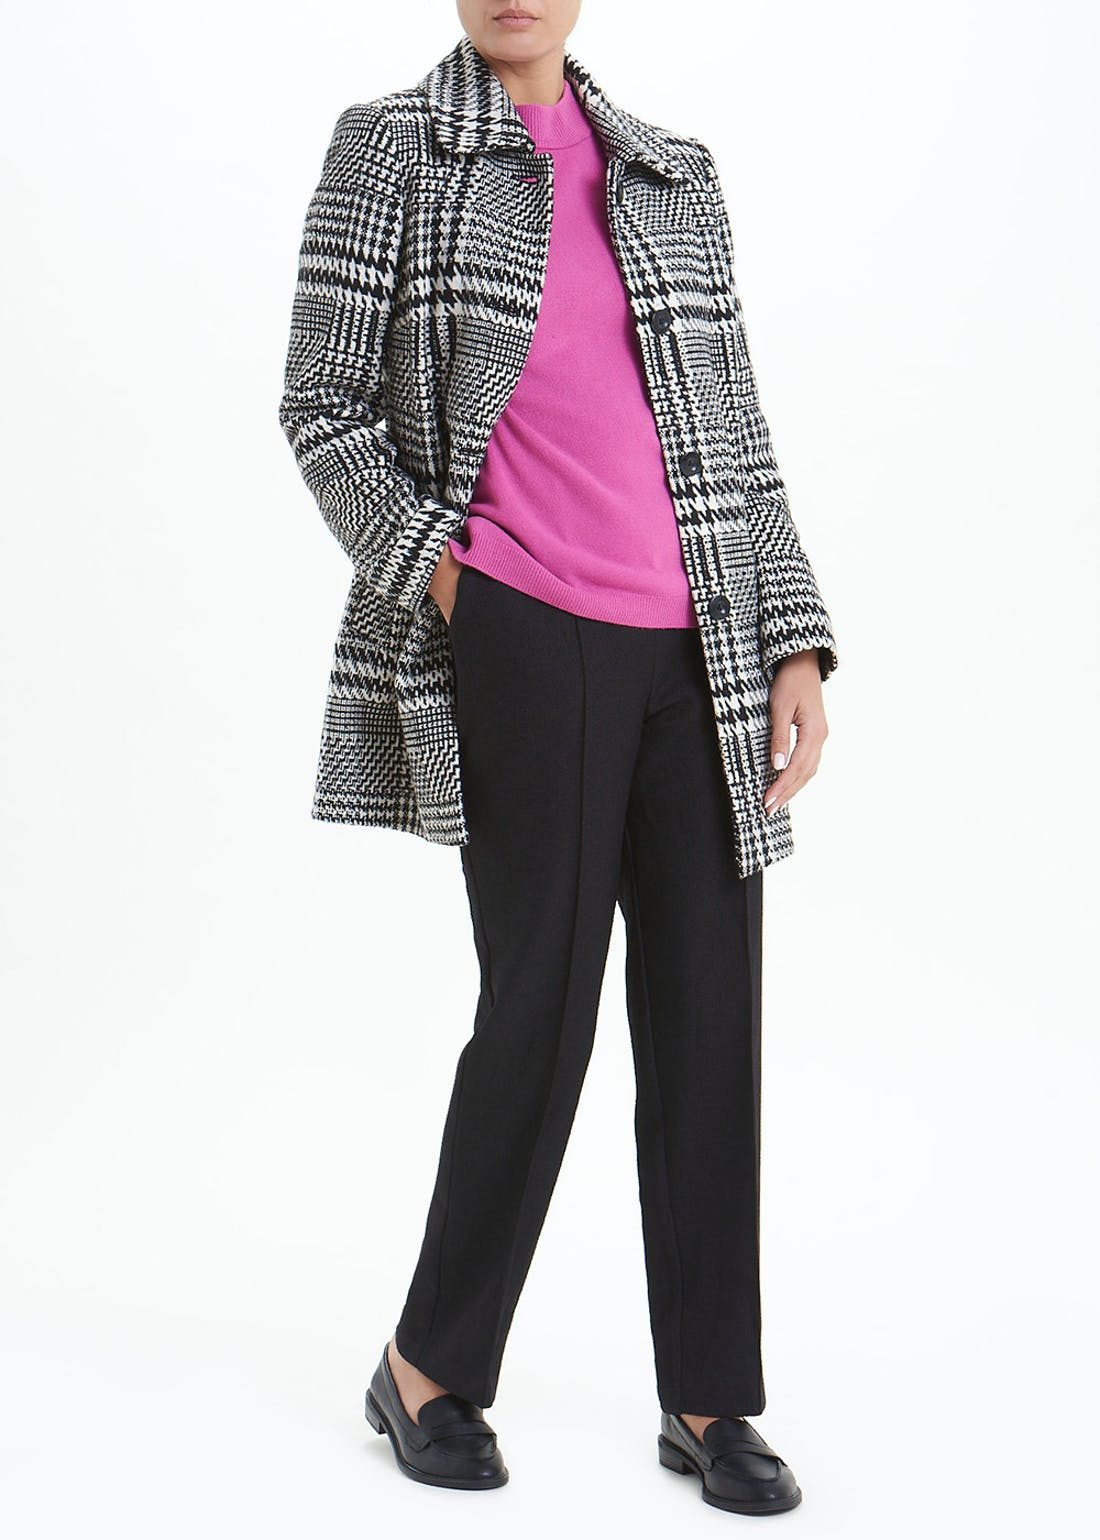 Black Dogtooth Check Dolly Coat